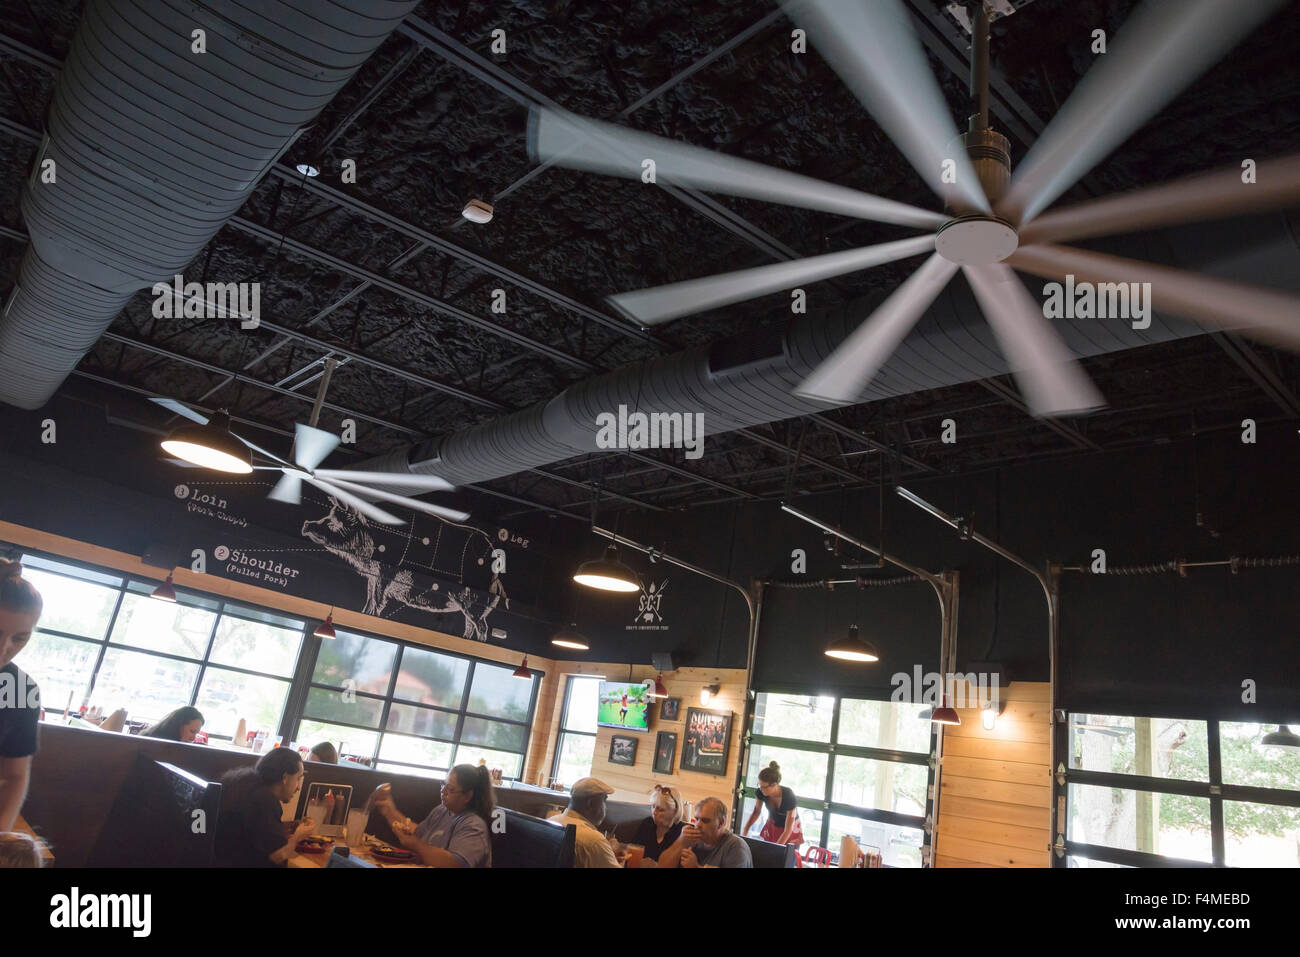 Brand new open air interior of sonnys bbq restaurant sports stock brand new open air interior of sonnys bbq restaurant sports humongous industrial strength and sized ceiling fans mozeypictures Images